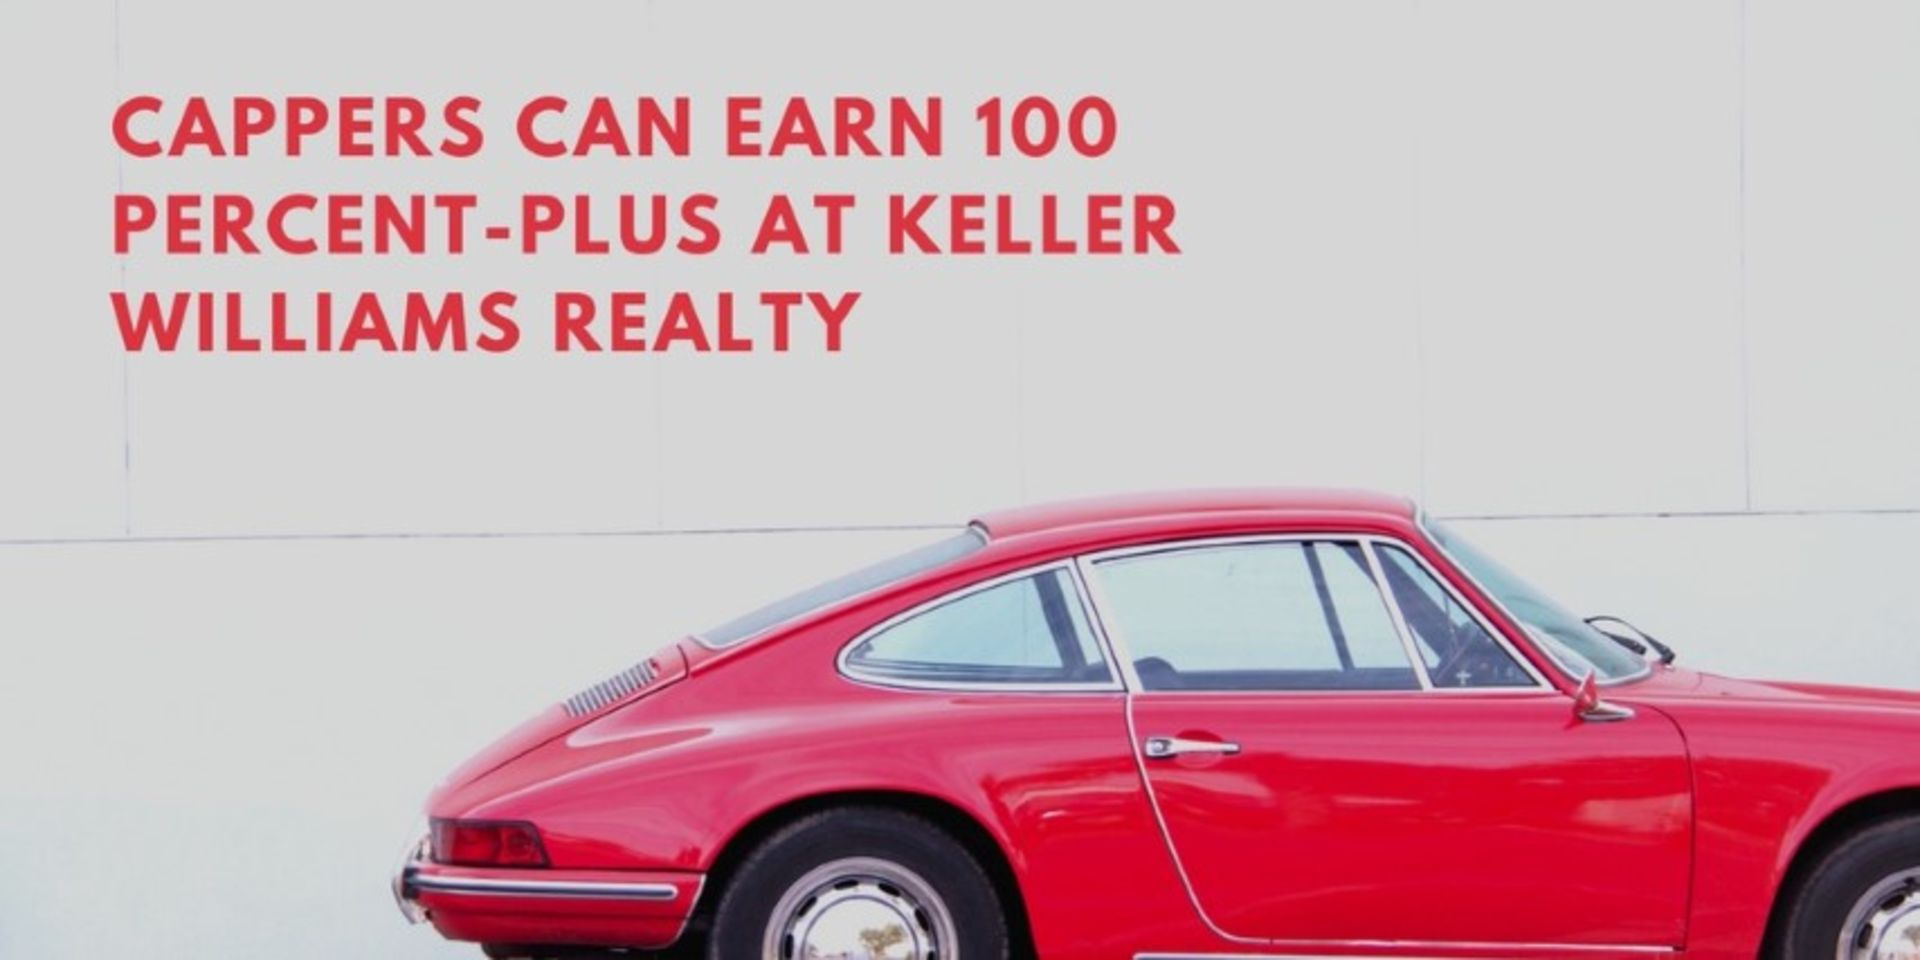 You can earn 100 Percent-Plus at Keller Williams Realty